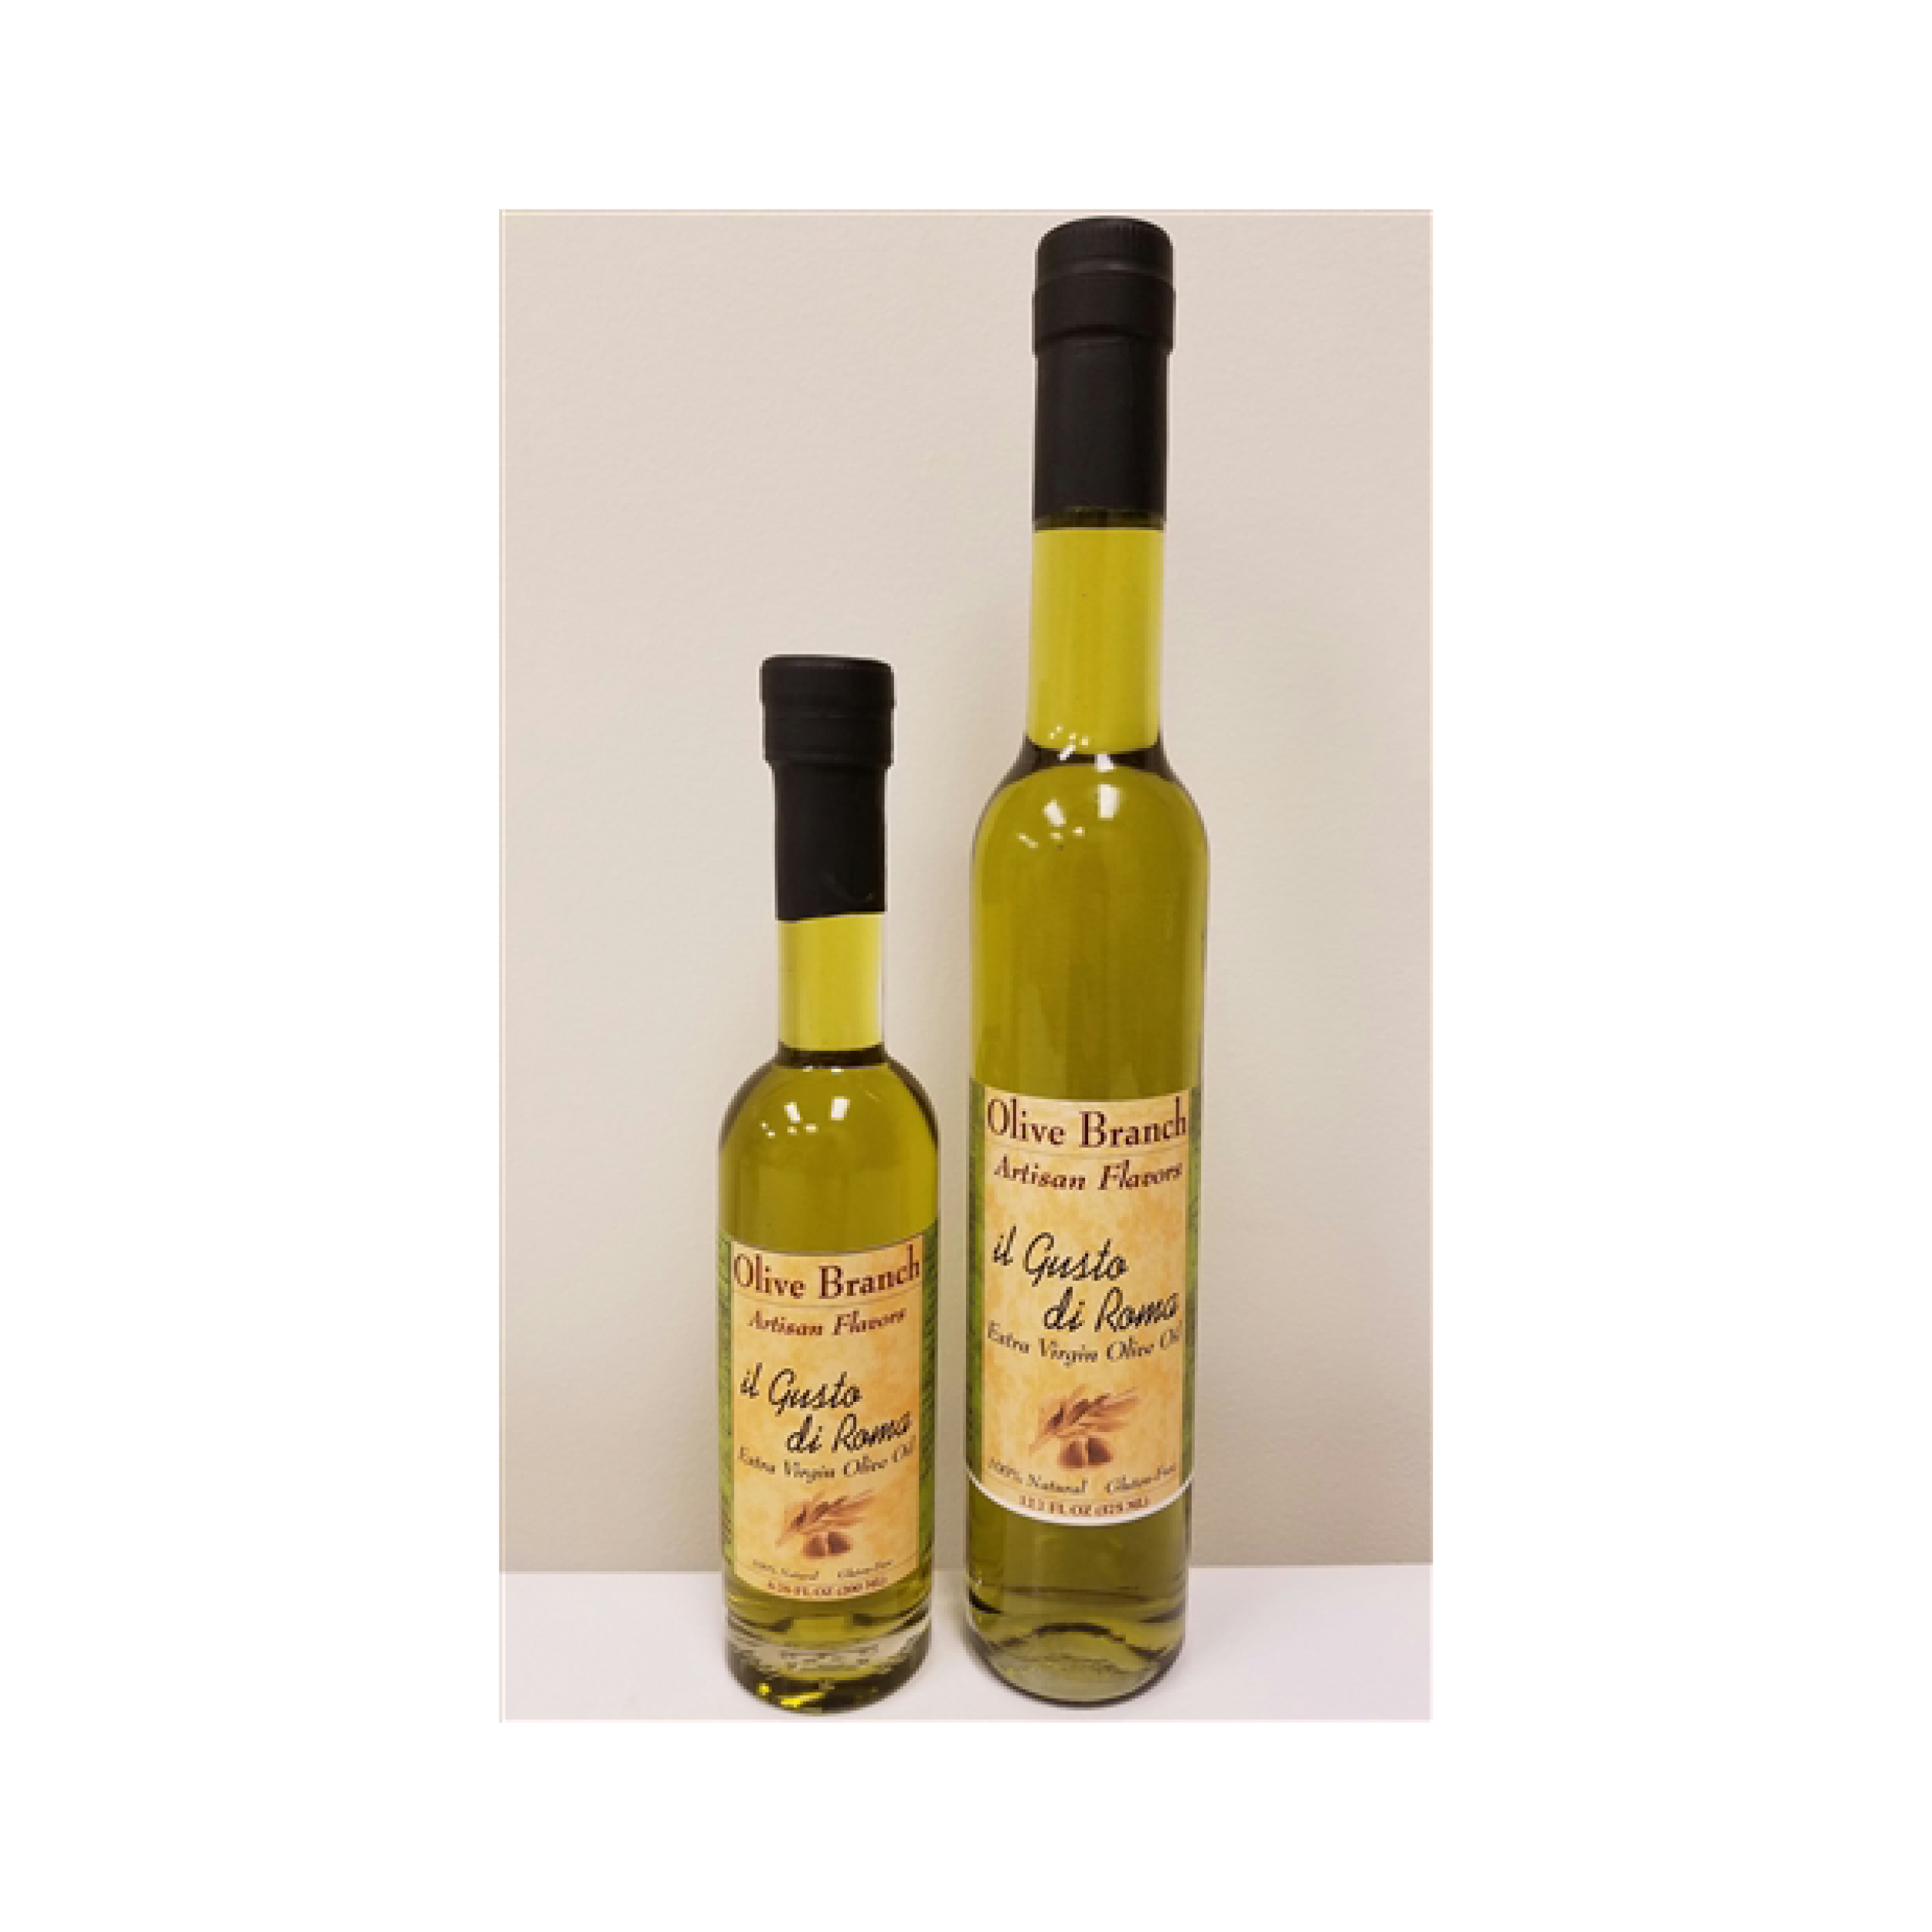 Olive Branch il Gusto Di Roma Oil $20.50   Wants 1 Has 1 Needs 0